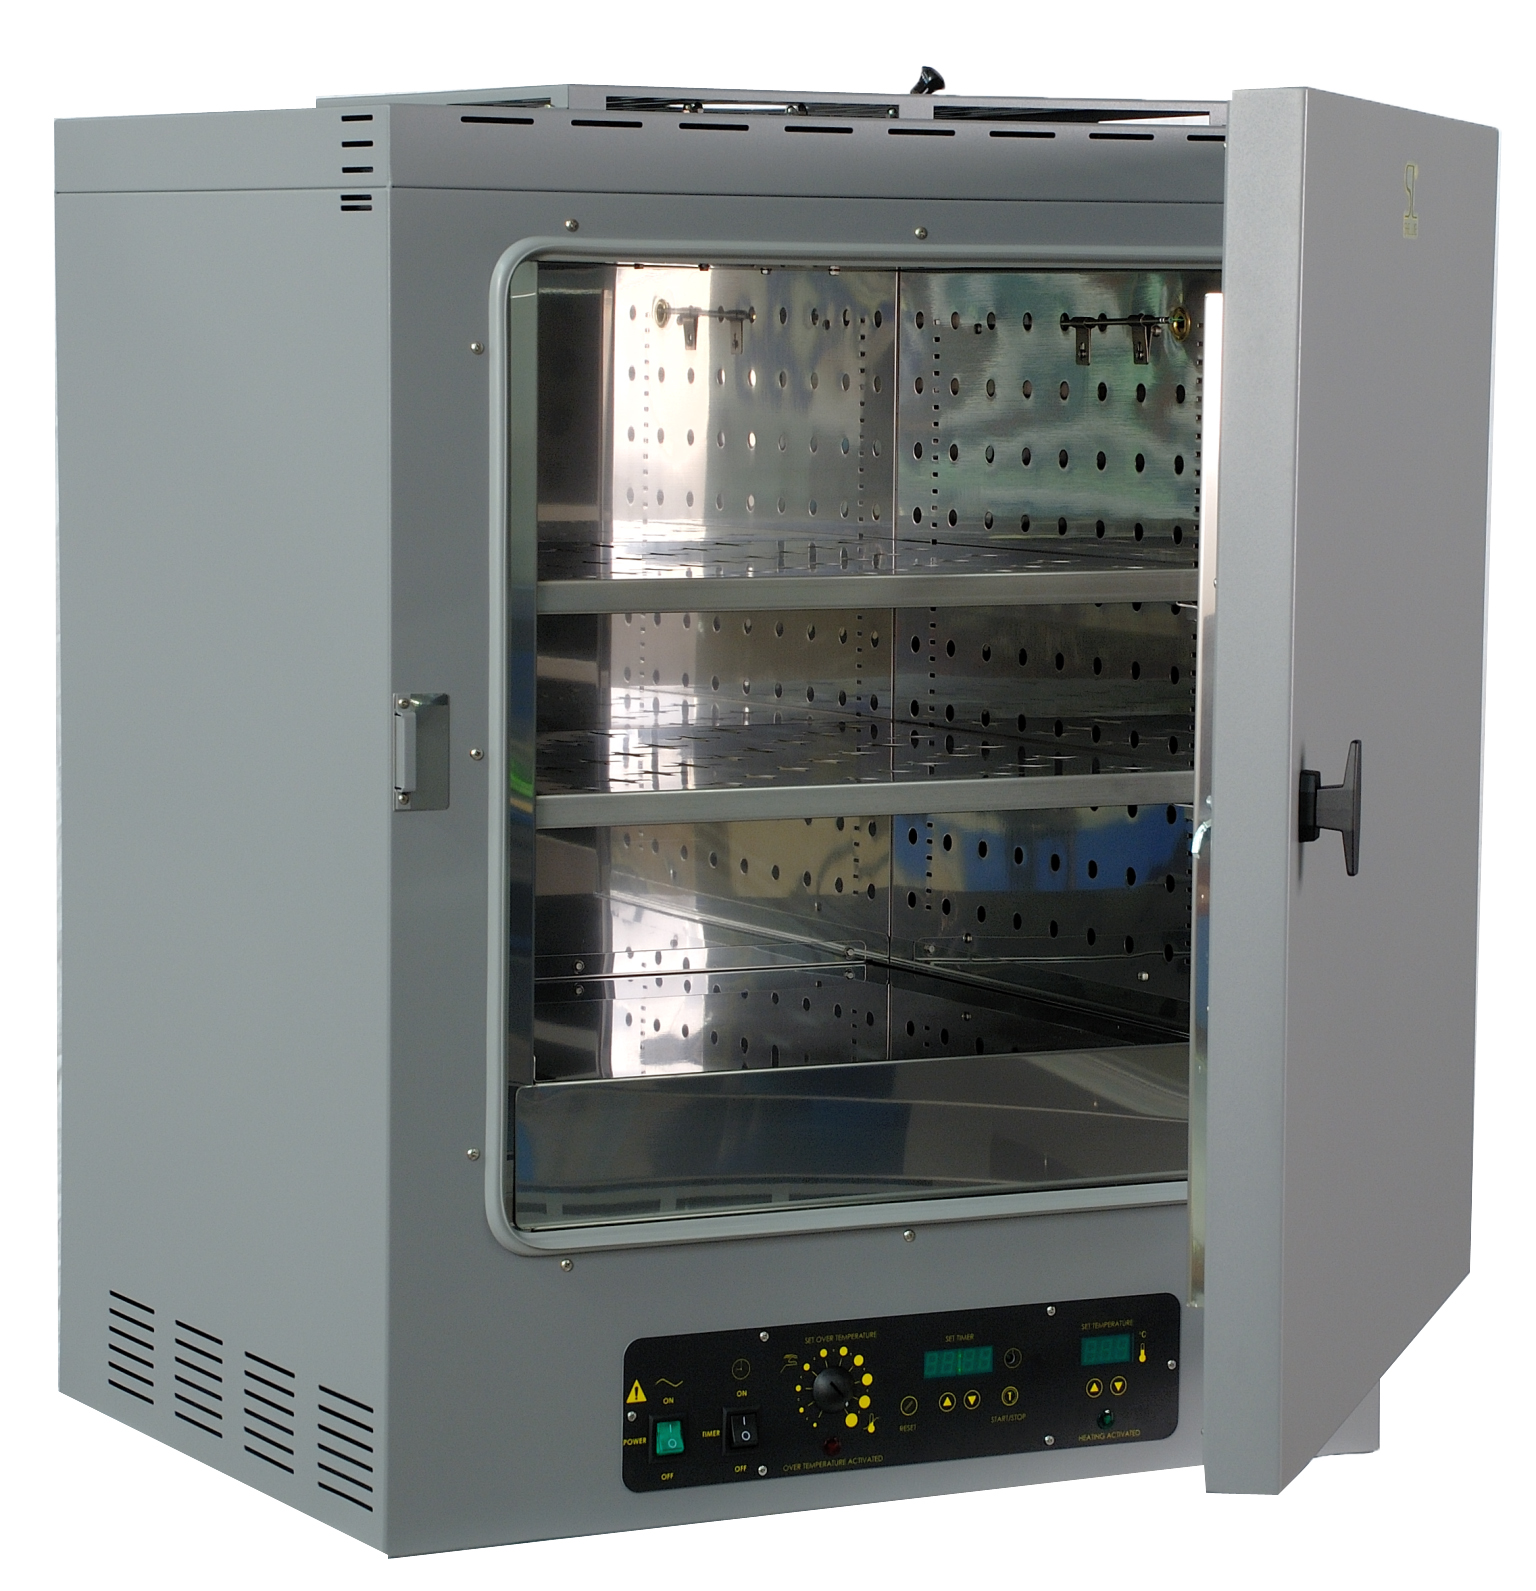 Gravity Convection Ovens